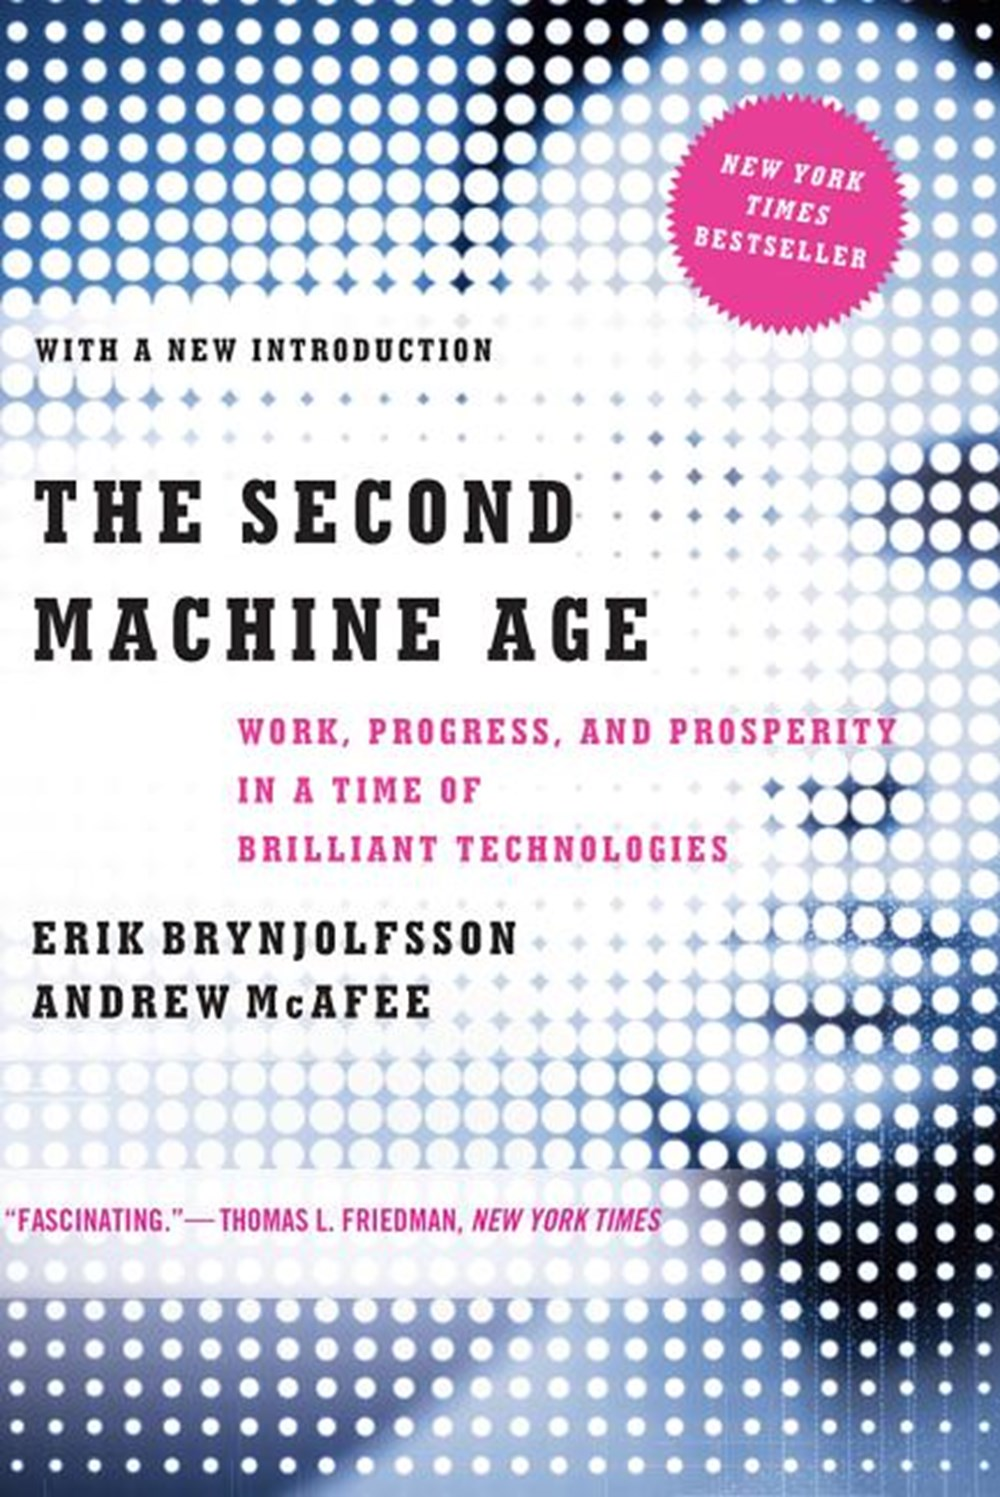 Second Machine Age Work, Progress, and Prosperity in a Time of Brilliant Technologies